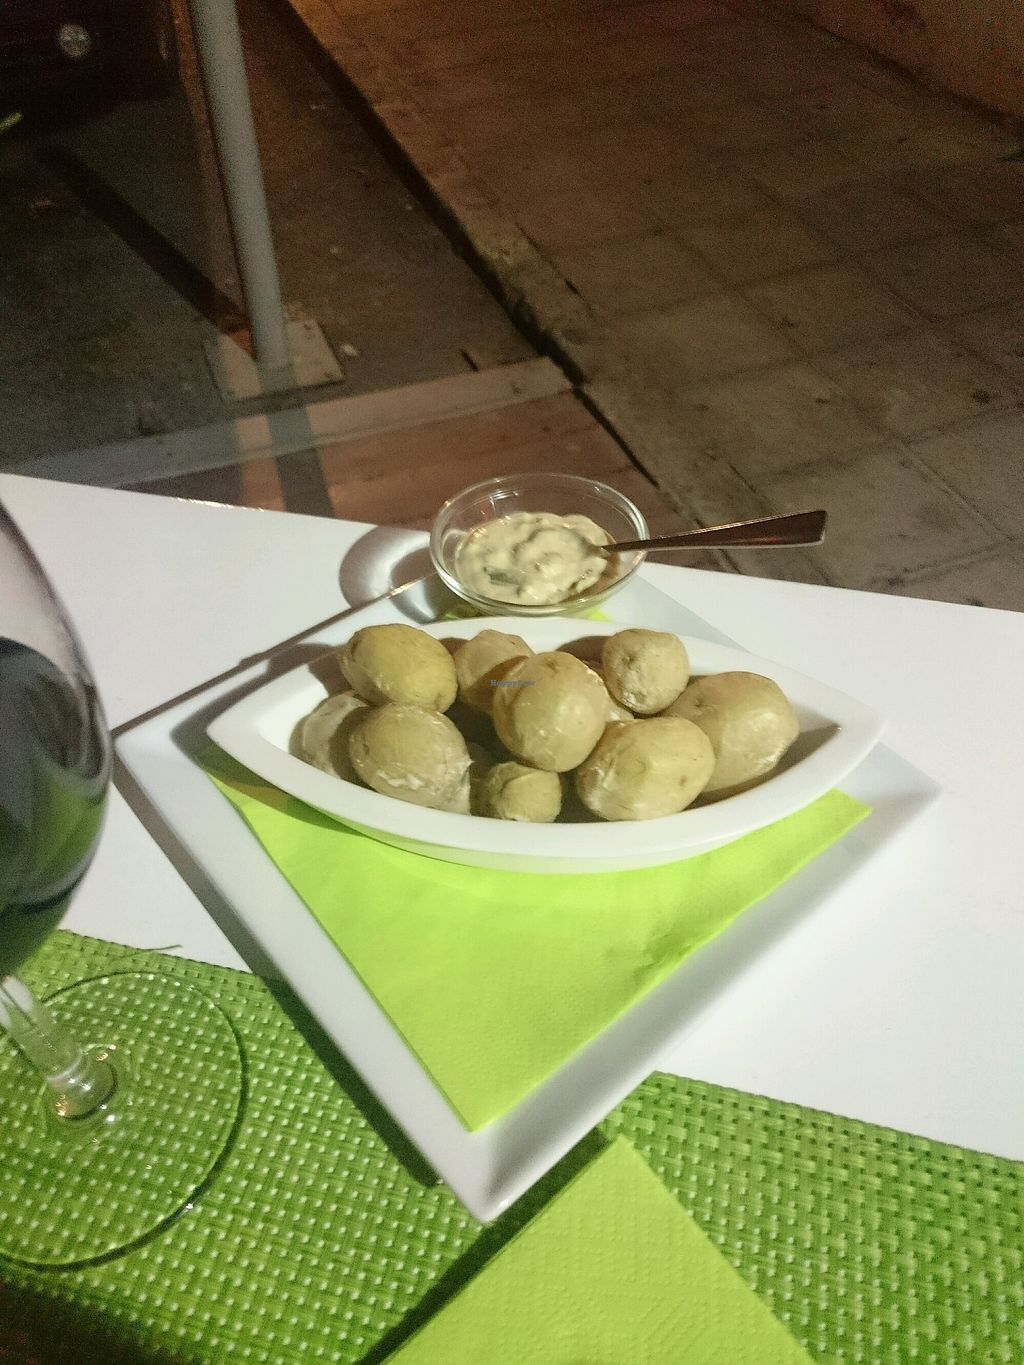 """Photo of Past & Future  by <a href=""""/members/profile/ShionaMcLeod"""">ShionaMcLeod</a> <br/>Dumplings and garlic sauce <br/> September 28, 2017  - <a href='/contact/abuse/image/97310/309462'>Report</a>"""